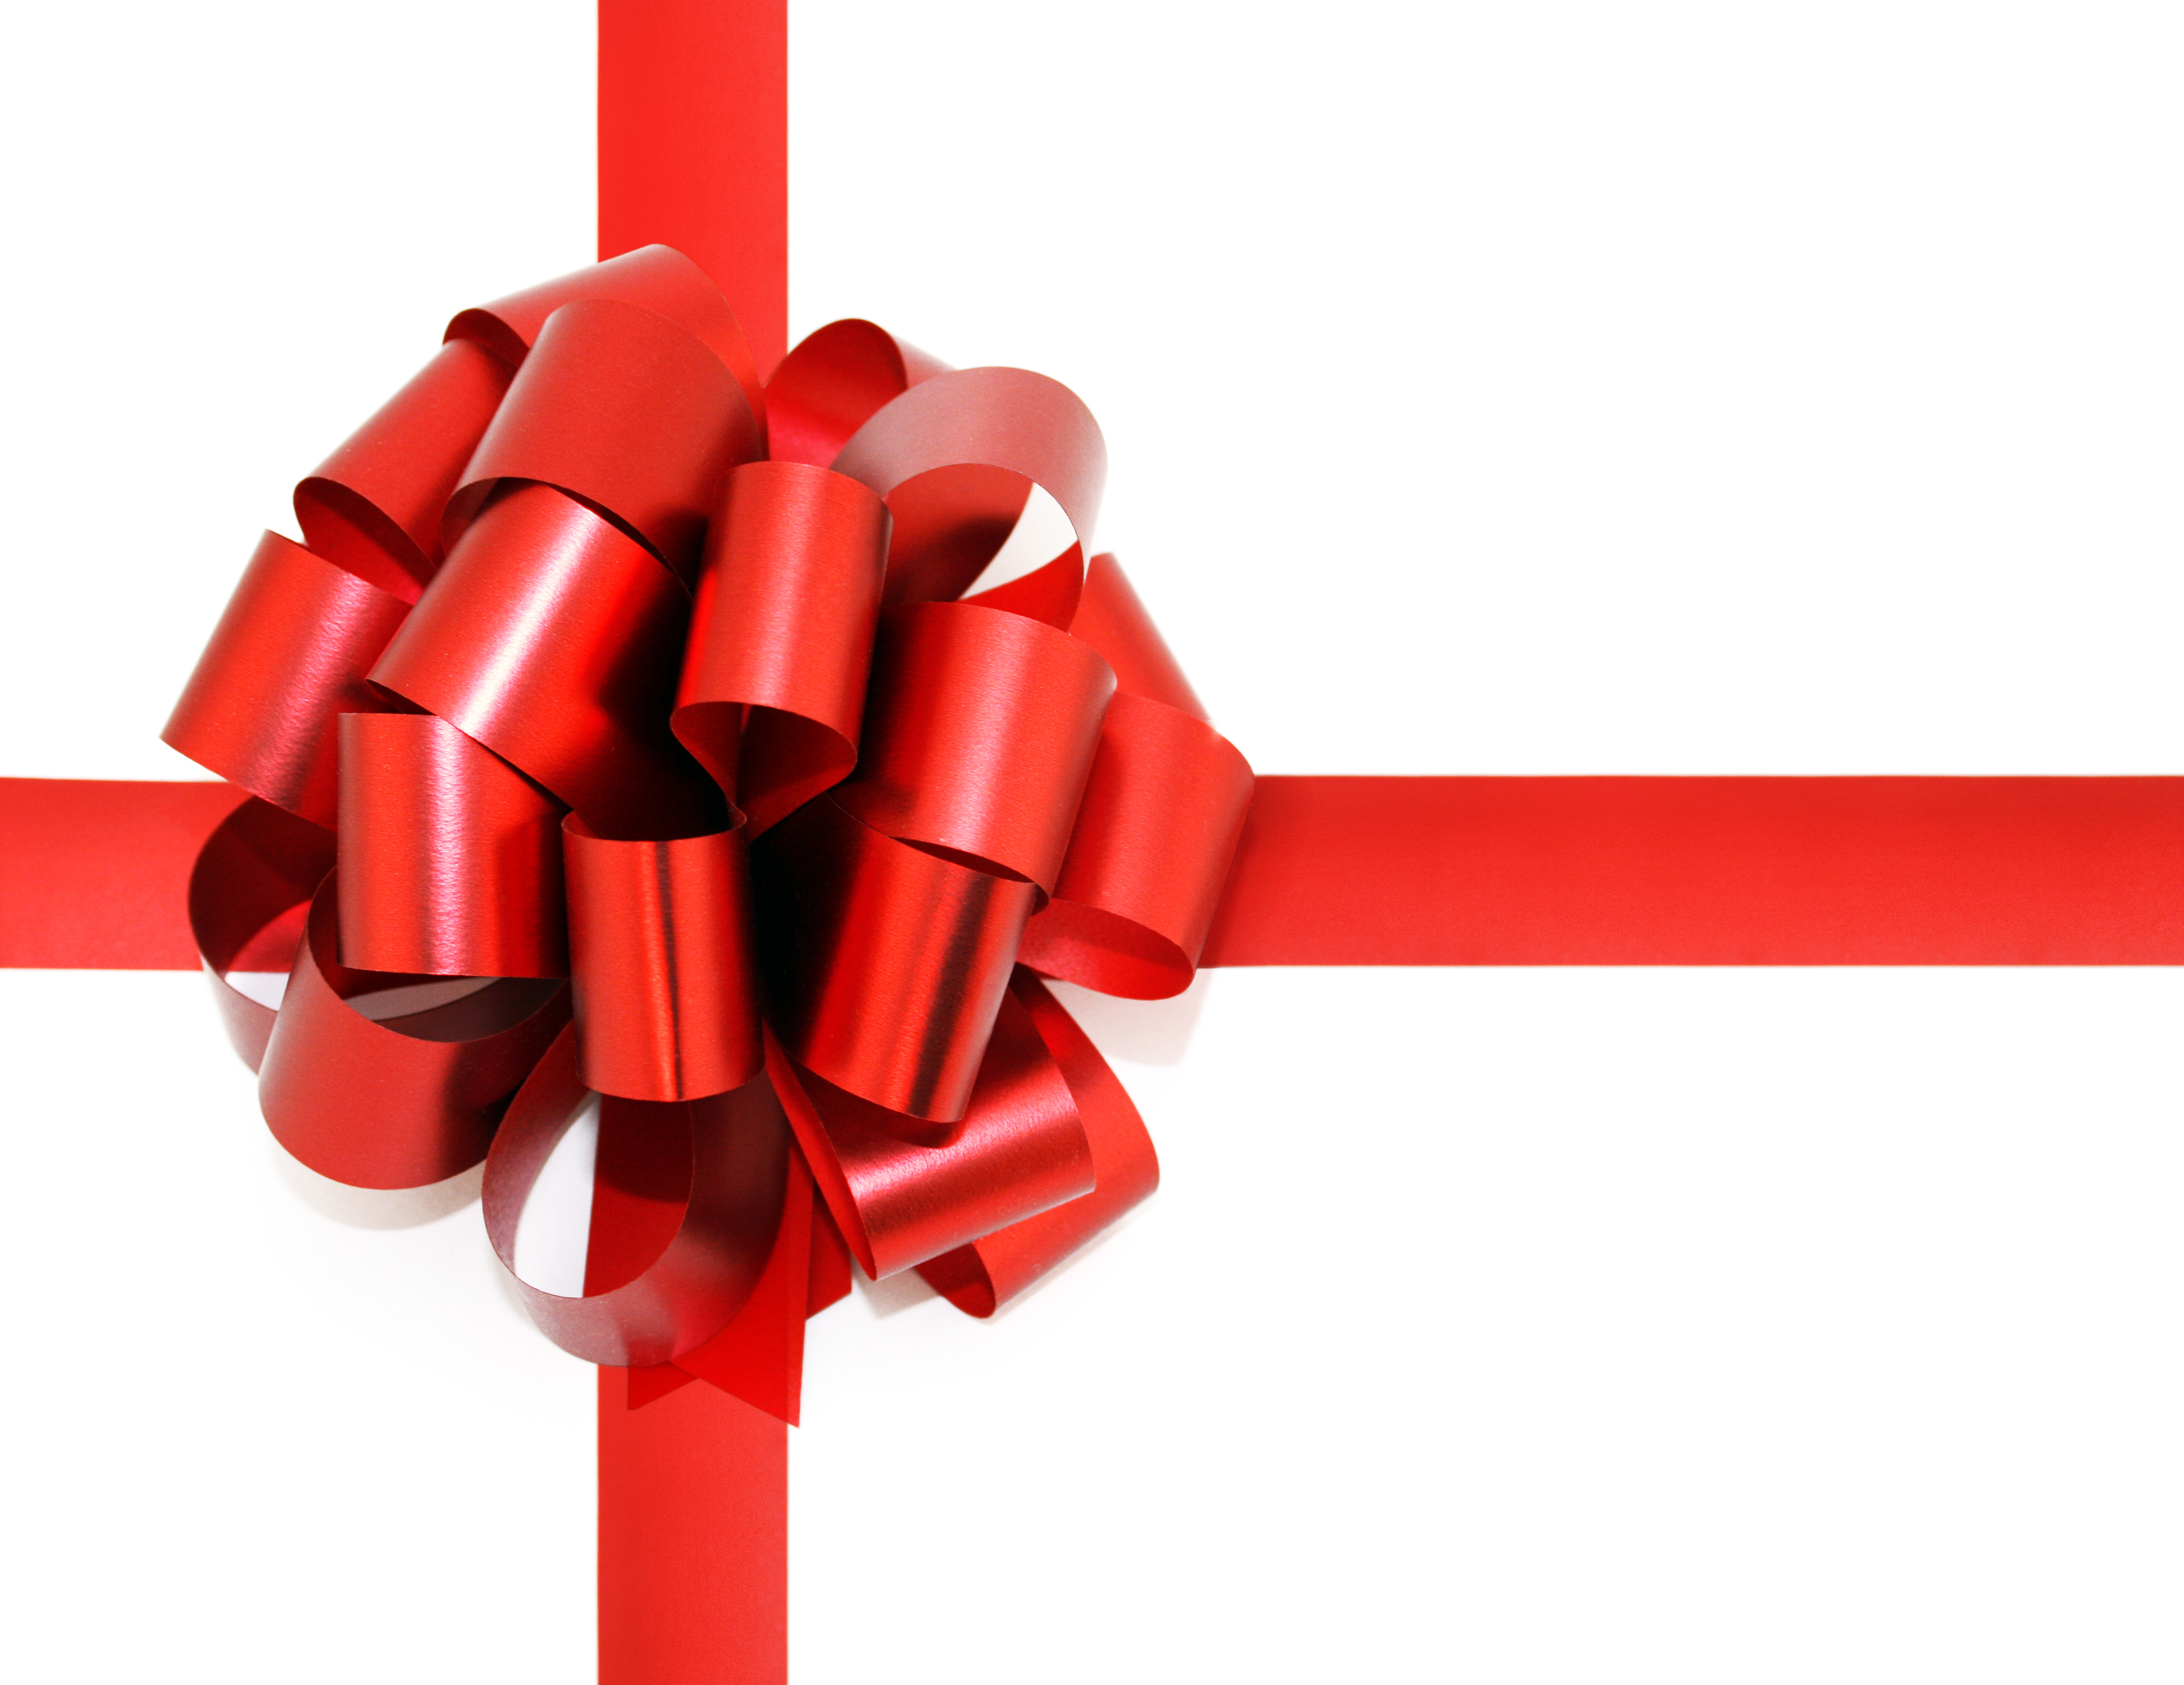 Red bow, Anniversary, Present, Isolated, Knot, HQ Photo